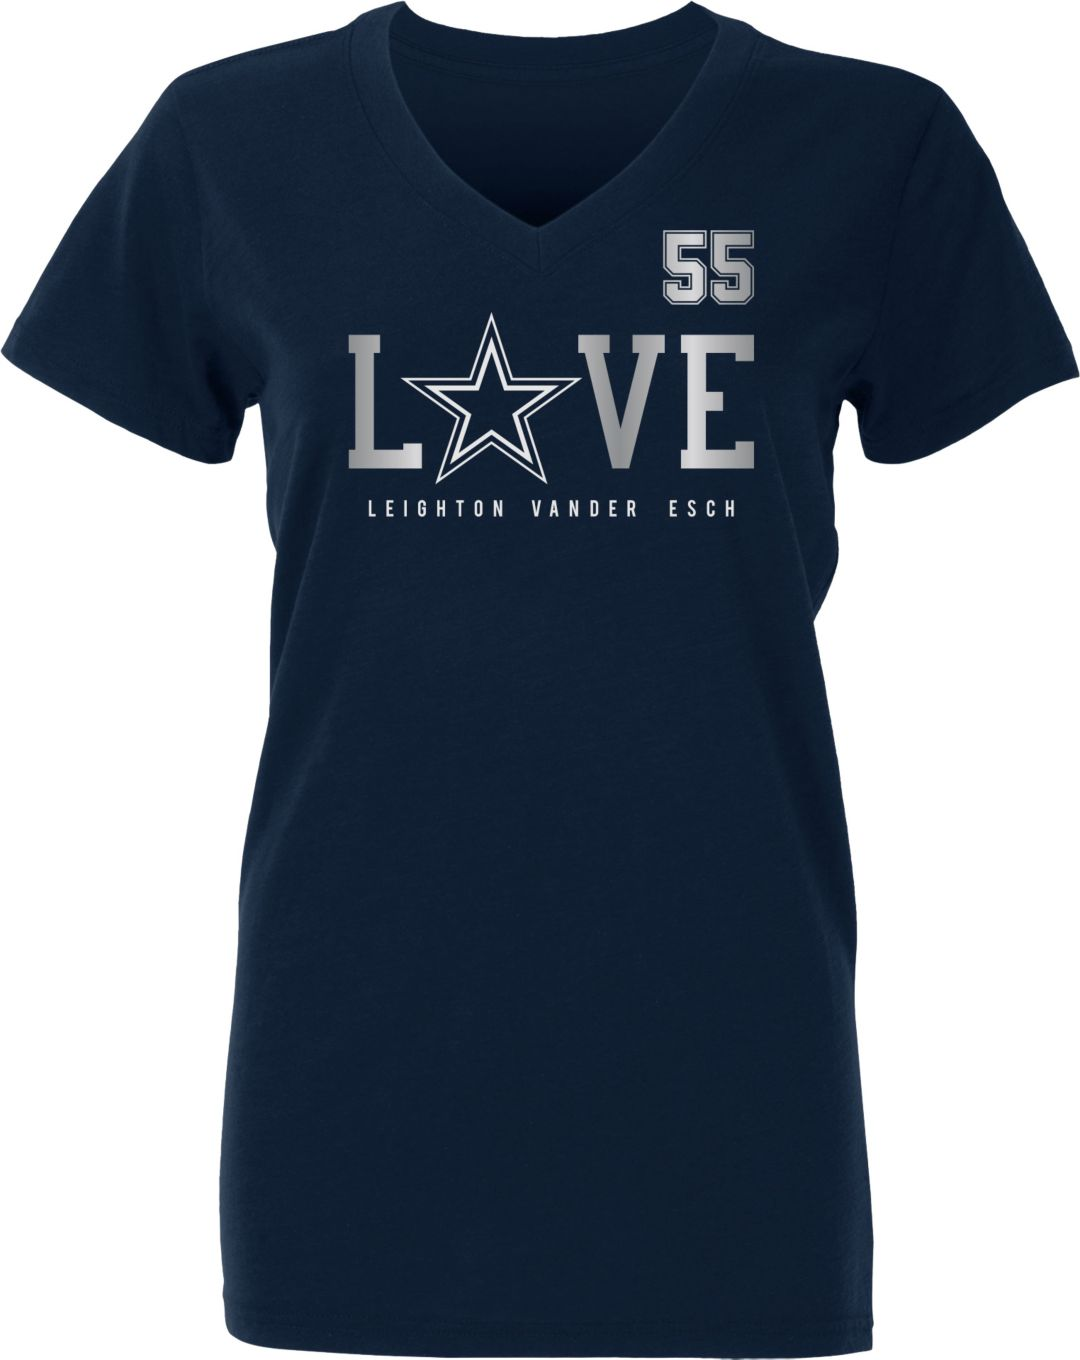 limited guantity top design separation shoes Dallas Cowboys Merchandising Women's Leighton Vander Esch Love Navy T-Shirt